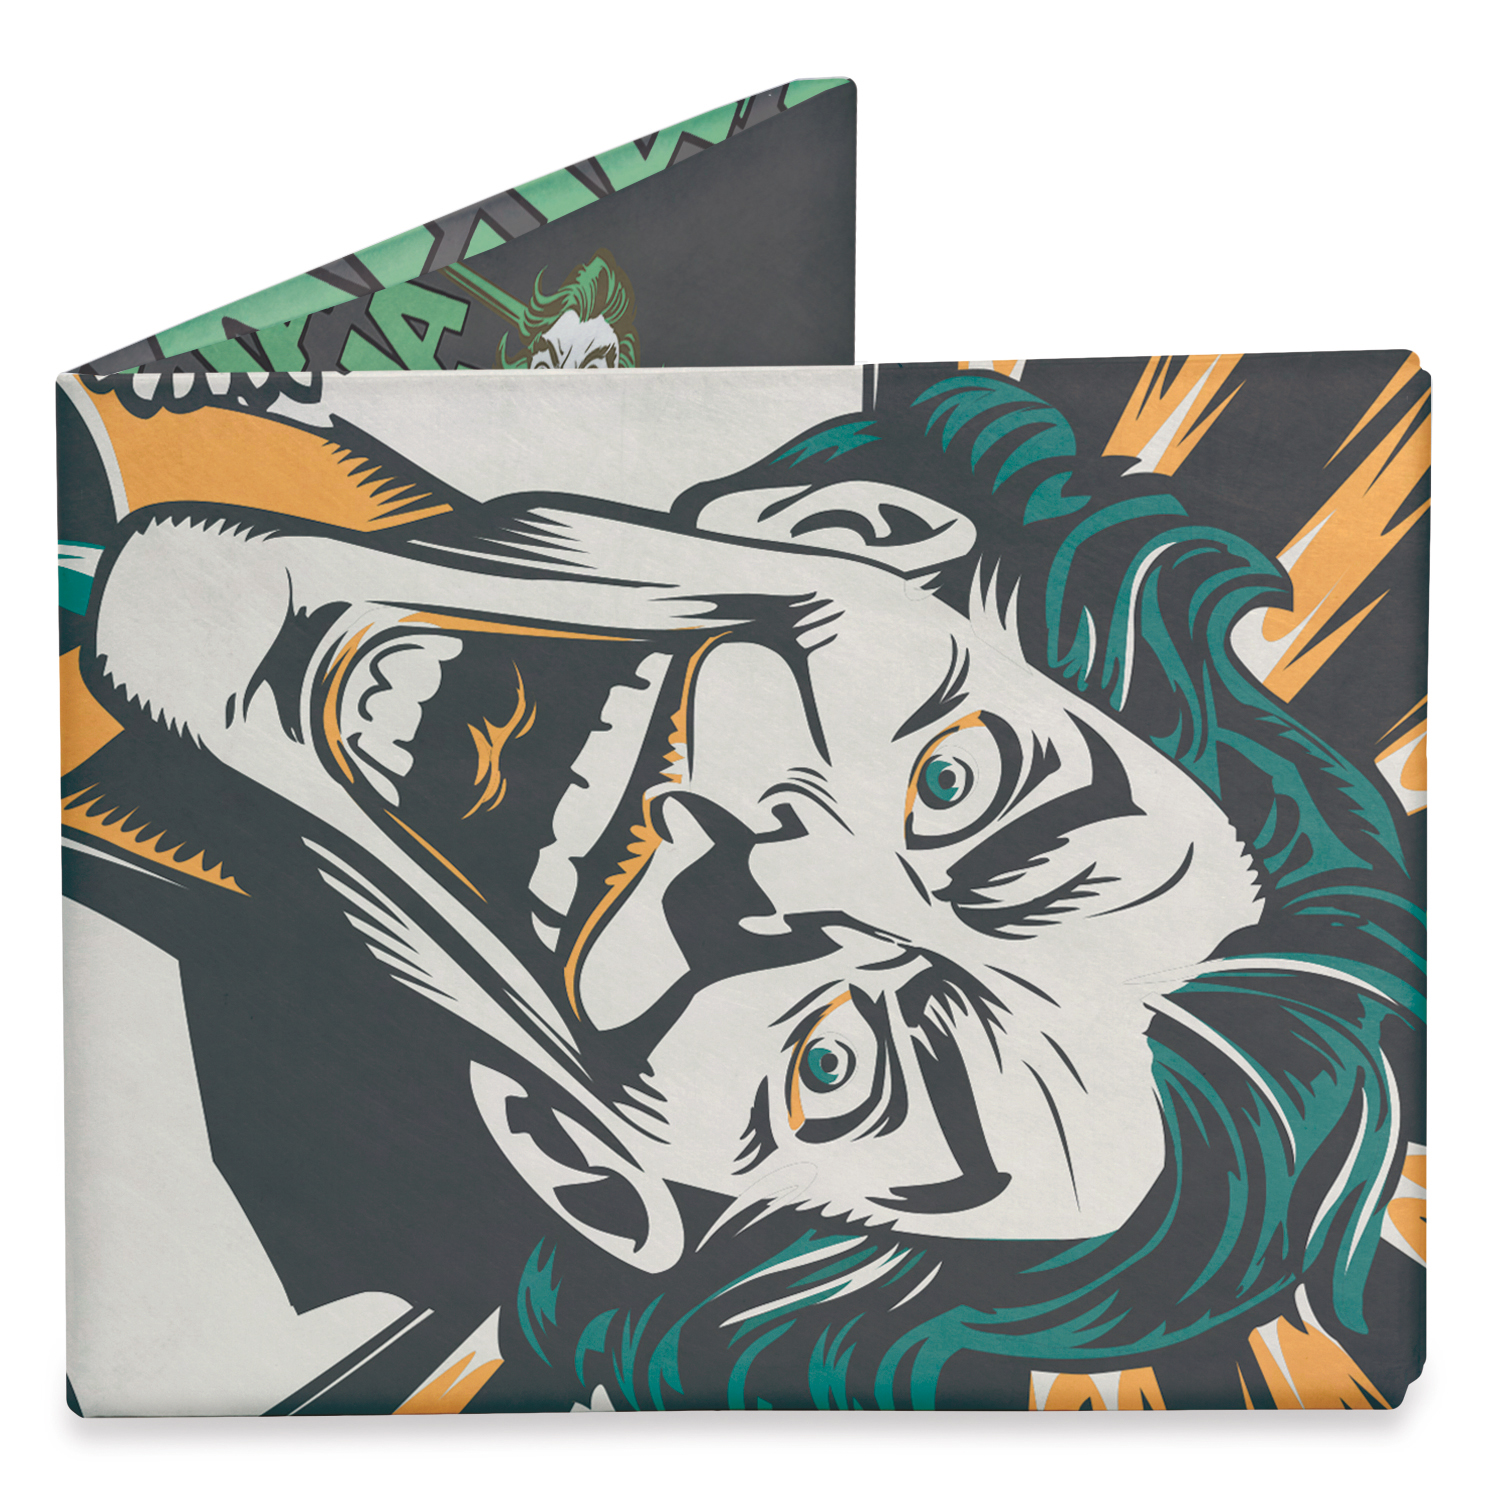 Mighty Wallet The Joker's Last Laugh